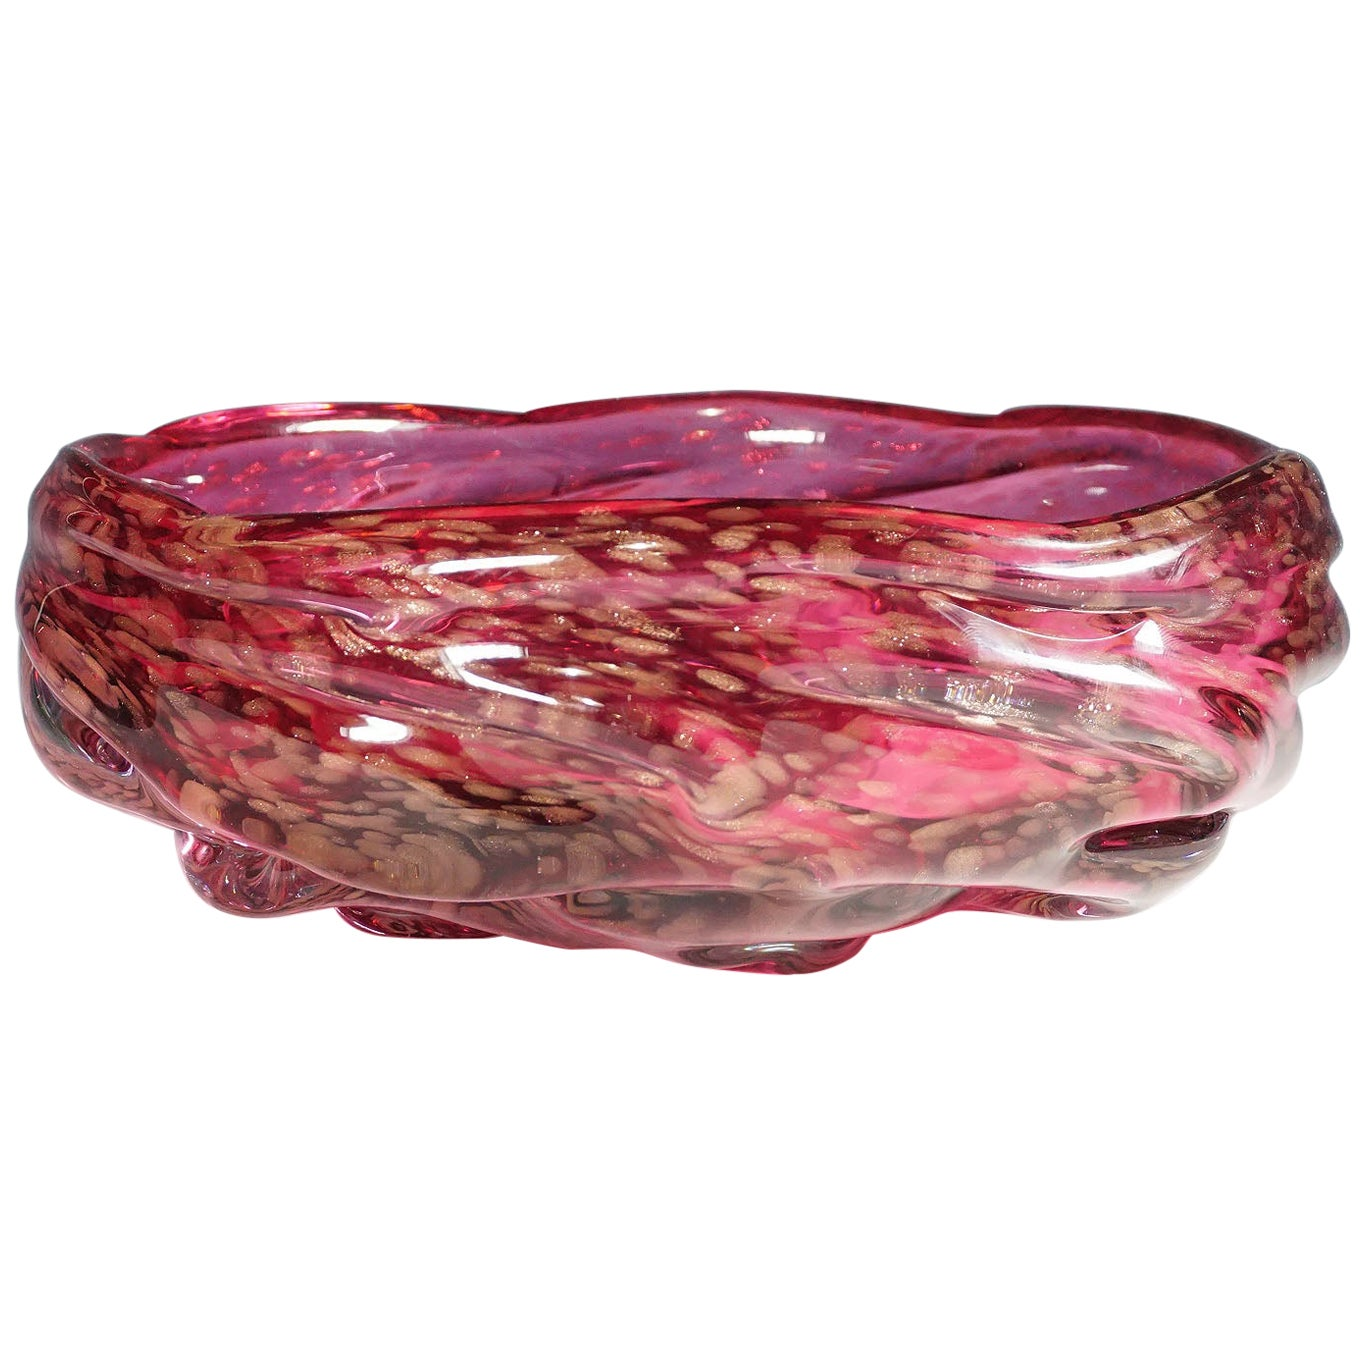 Large Murano Art Glass Bowl in Pink Glass with Aventurines, 1950s